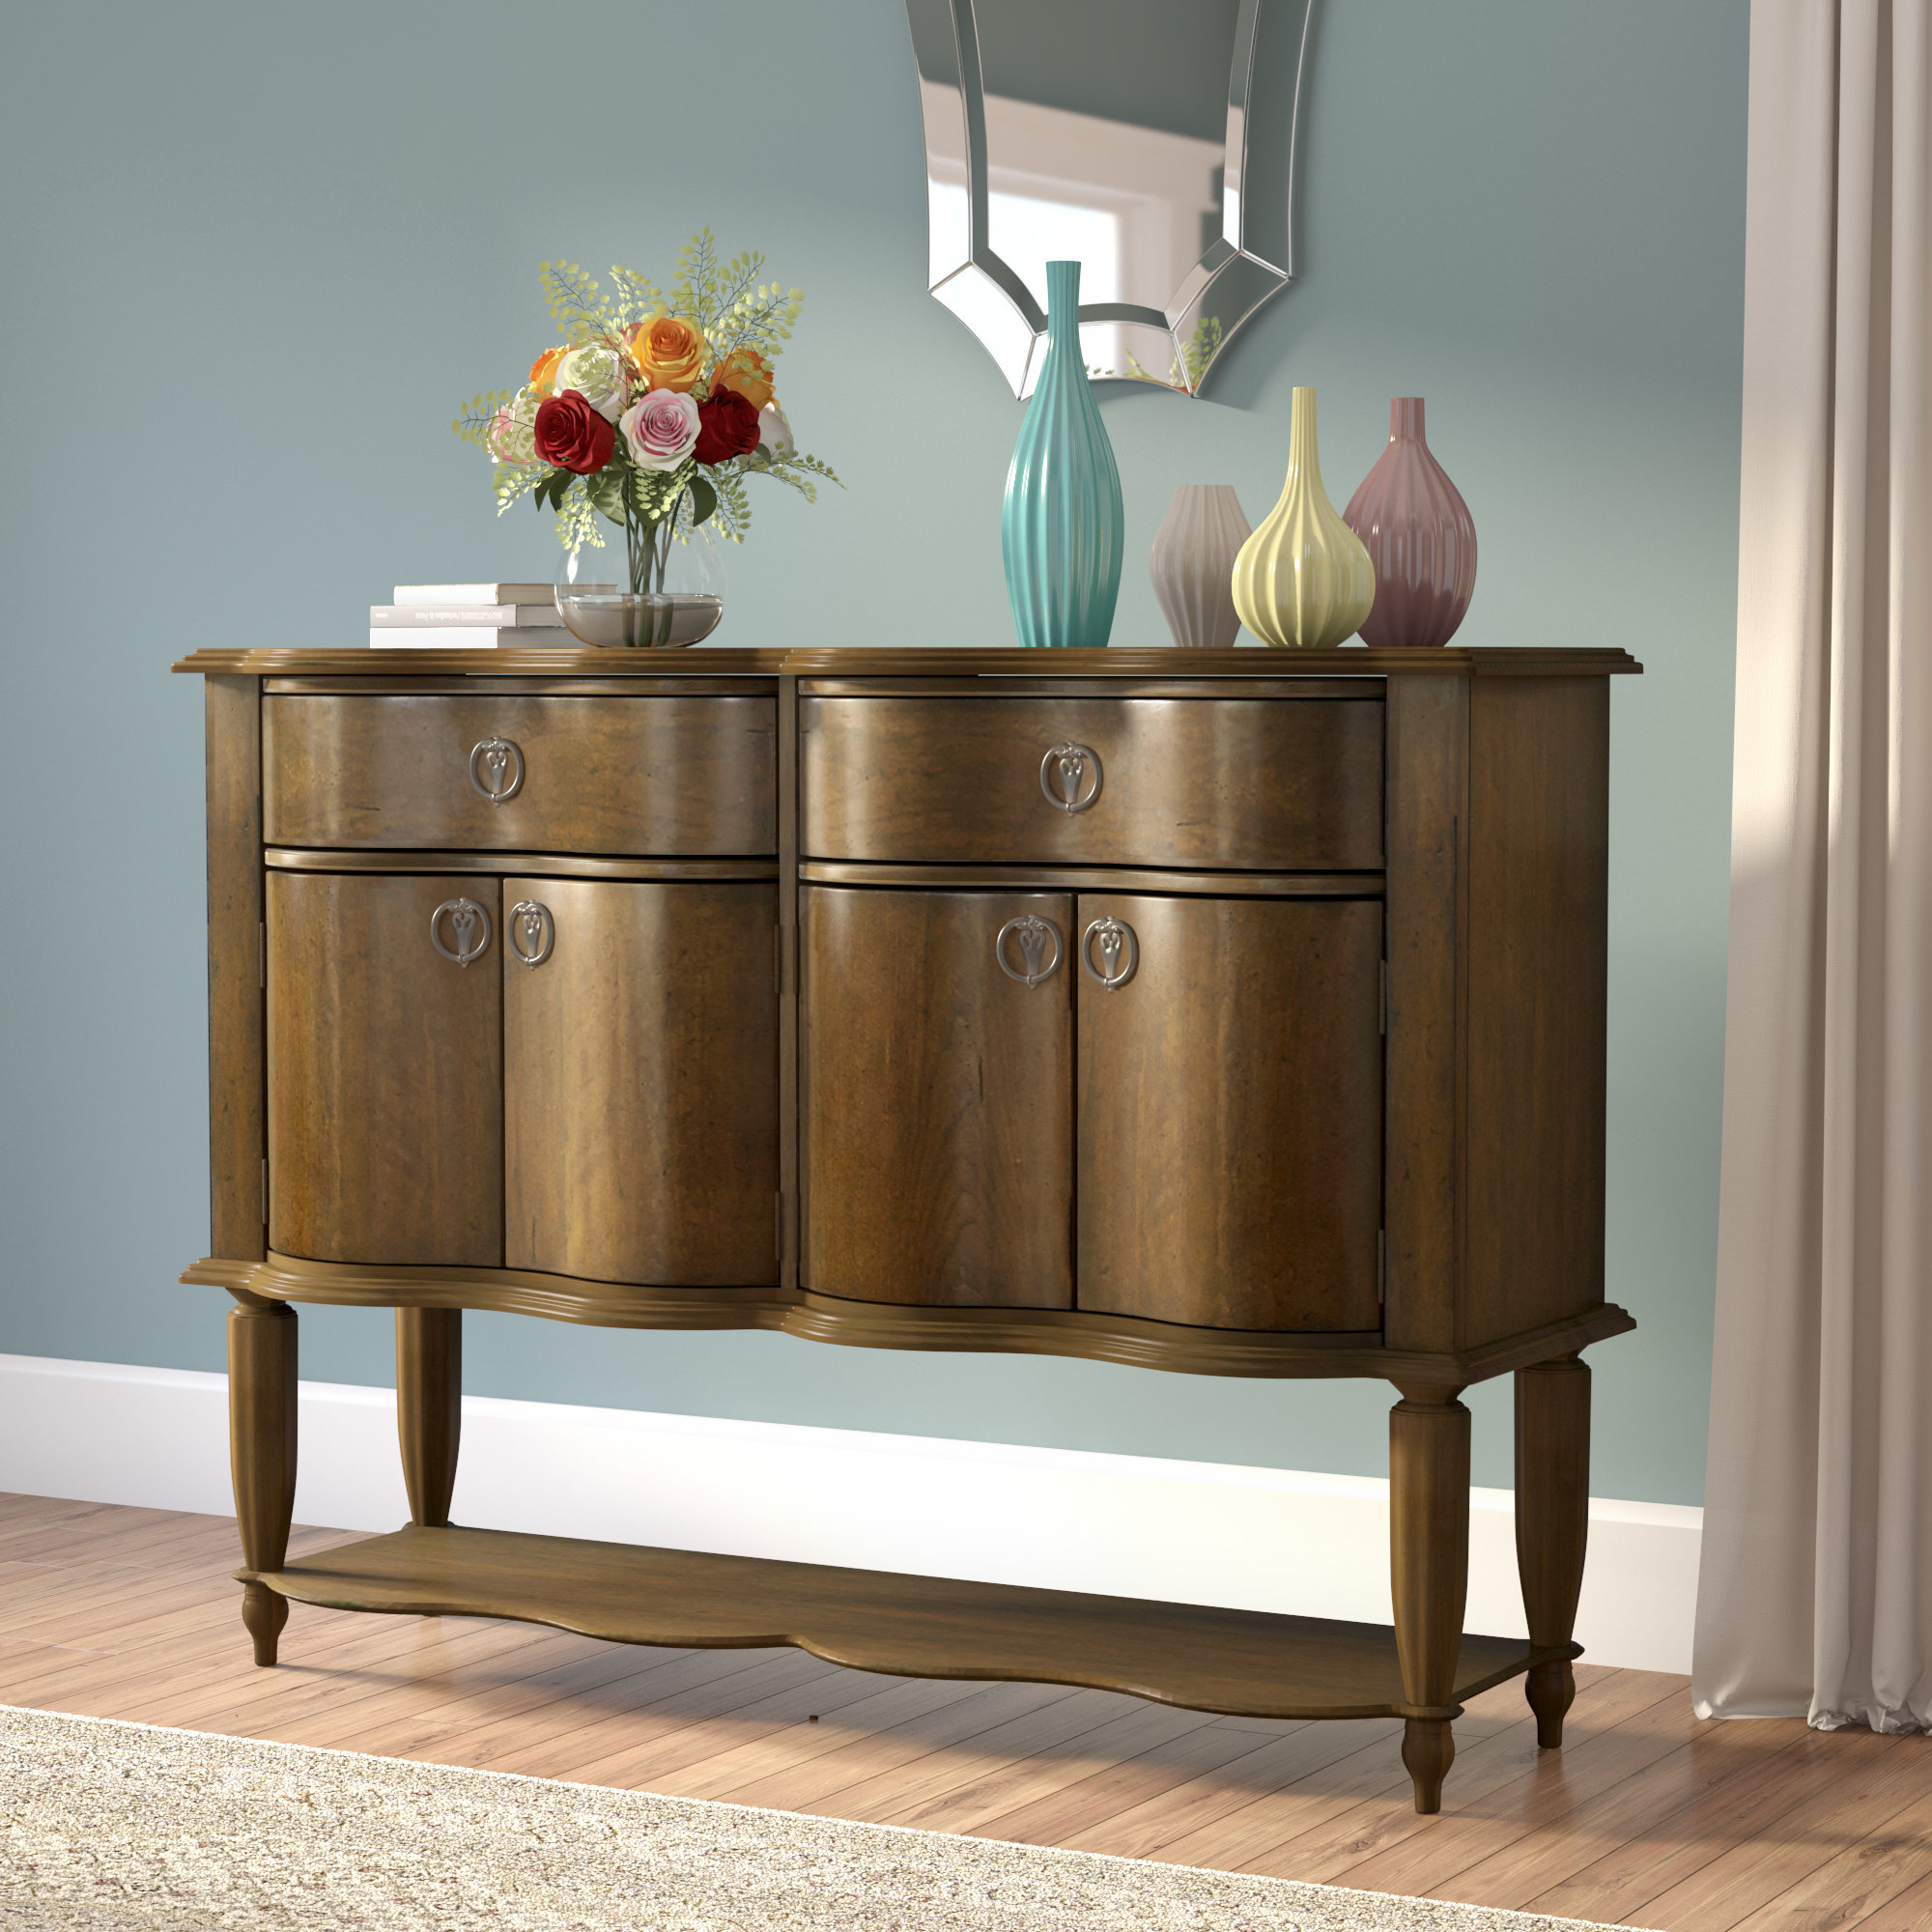 Elwood Key Buffet Table intended for Solid And Composite Wood Buffets In Cappuccino Finish (Image 5 of 30)